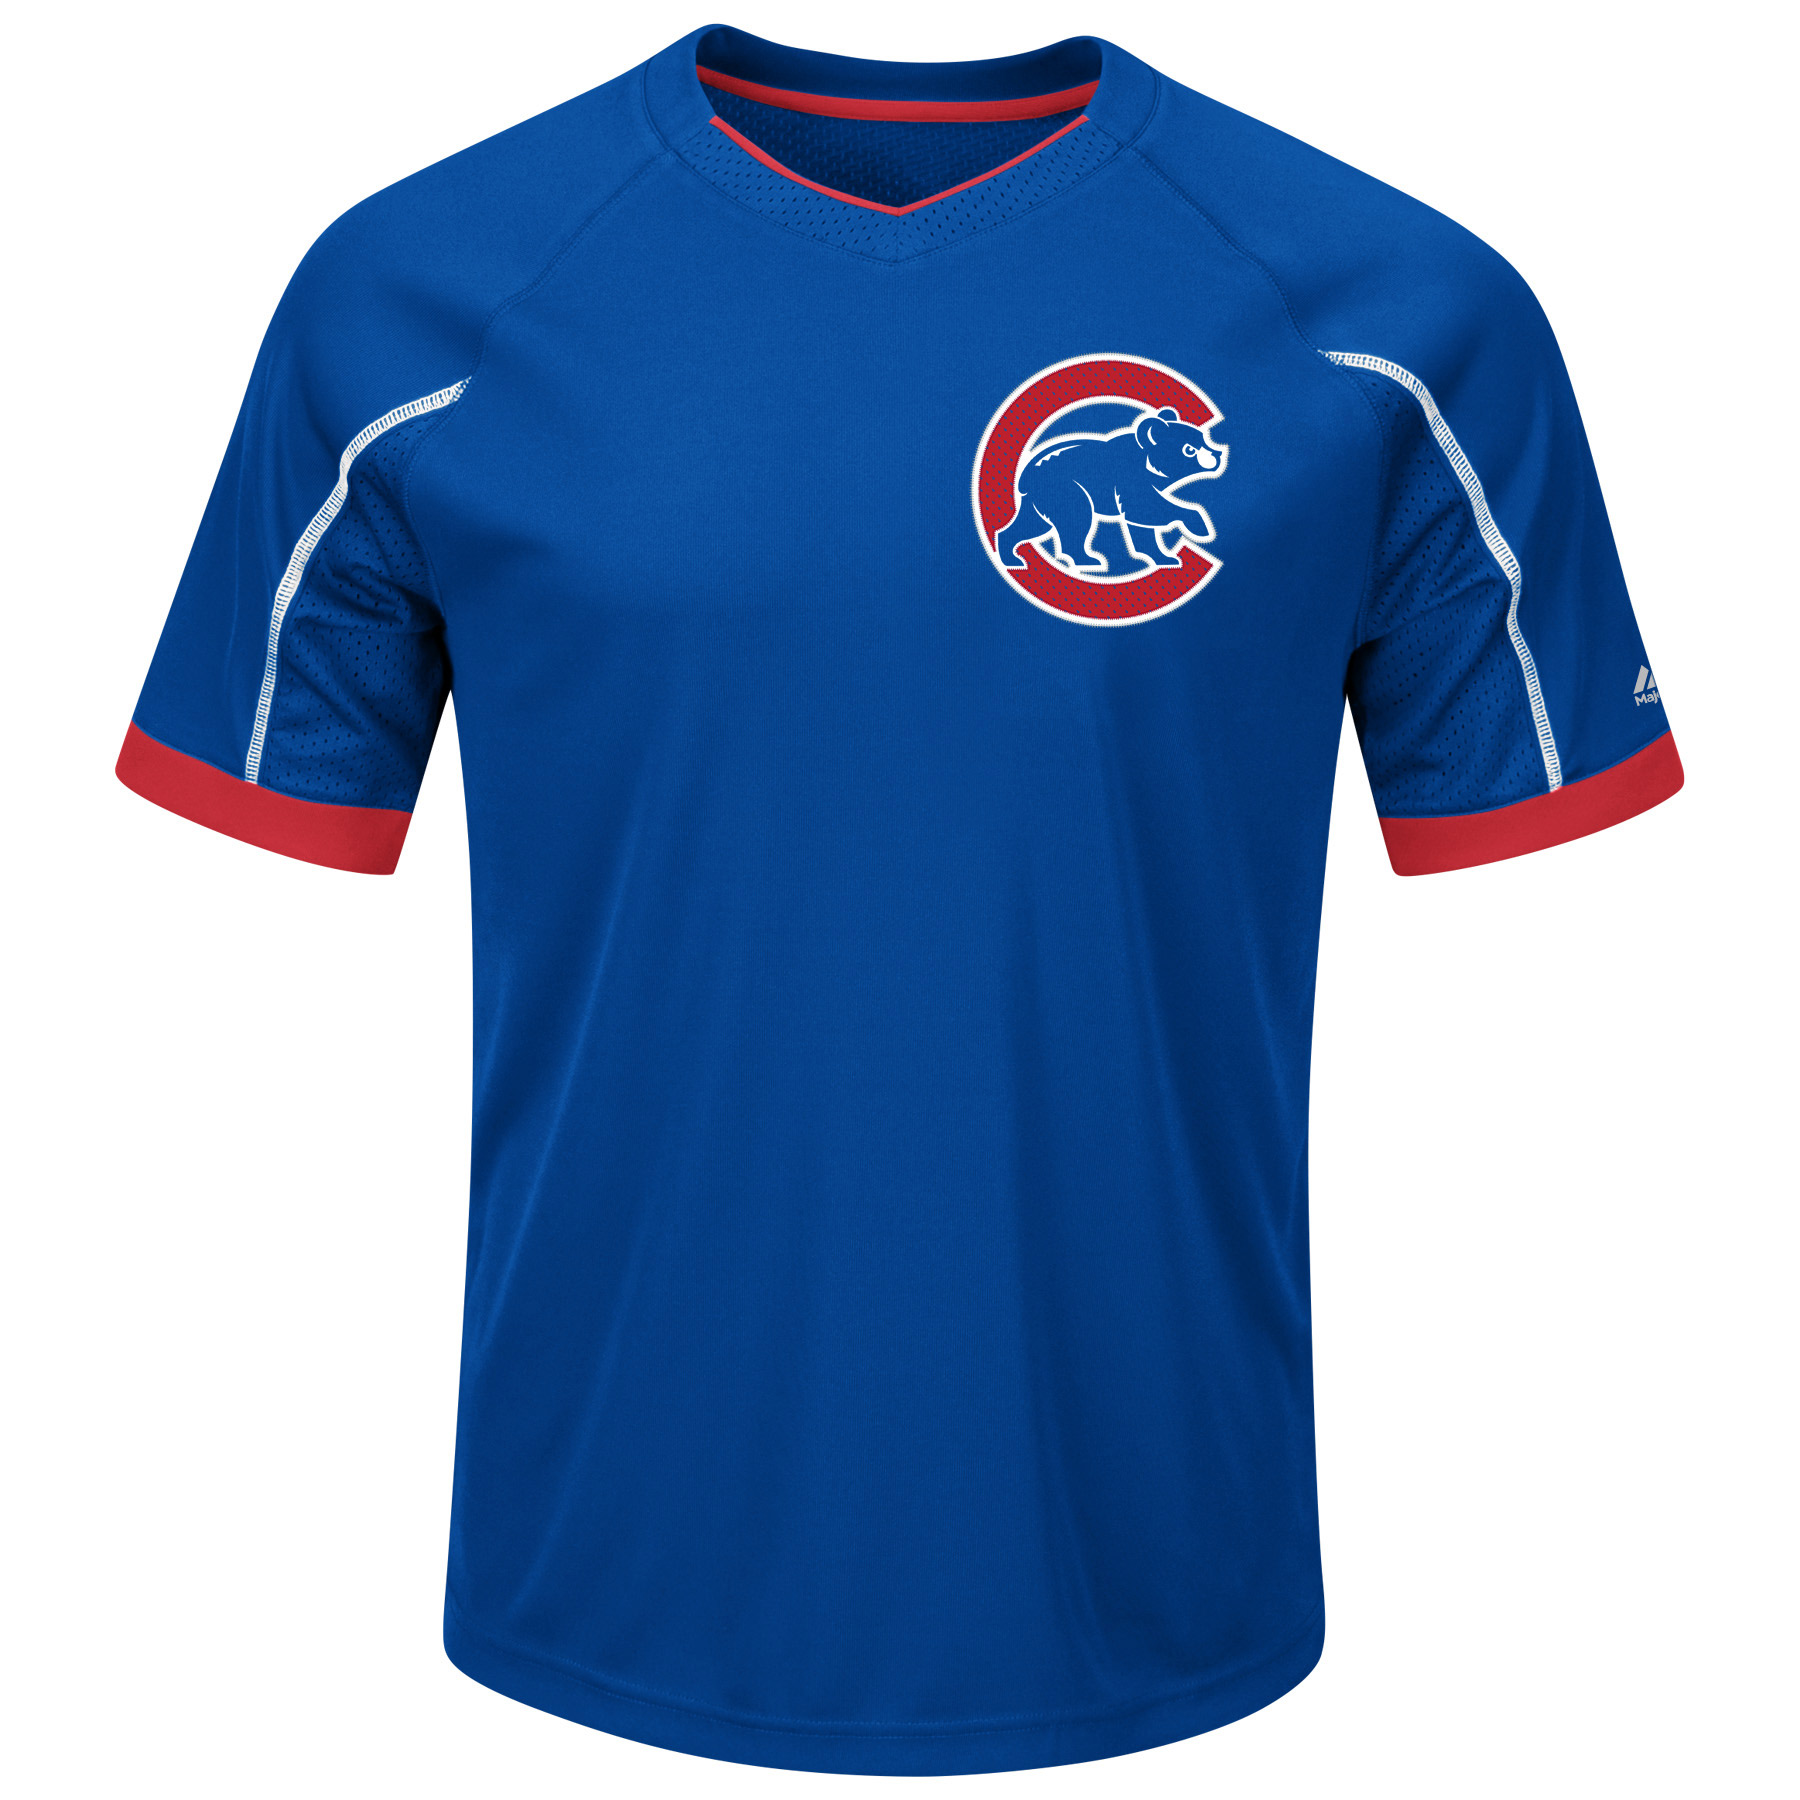 Chicago Cubs Majestic Big & Tall Emergence V-Neck T-Shirt - Royal/Red